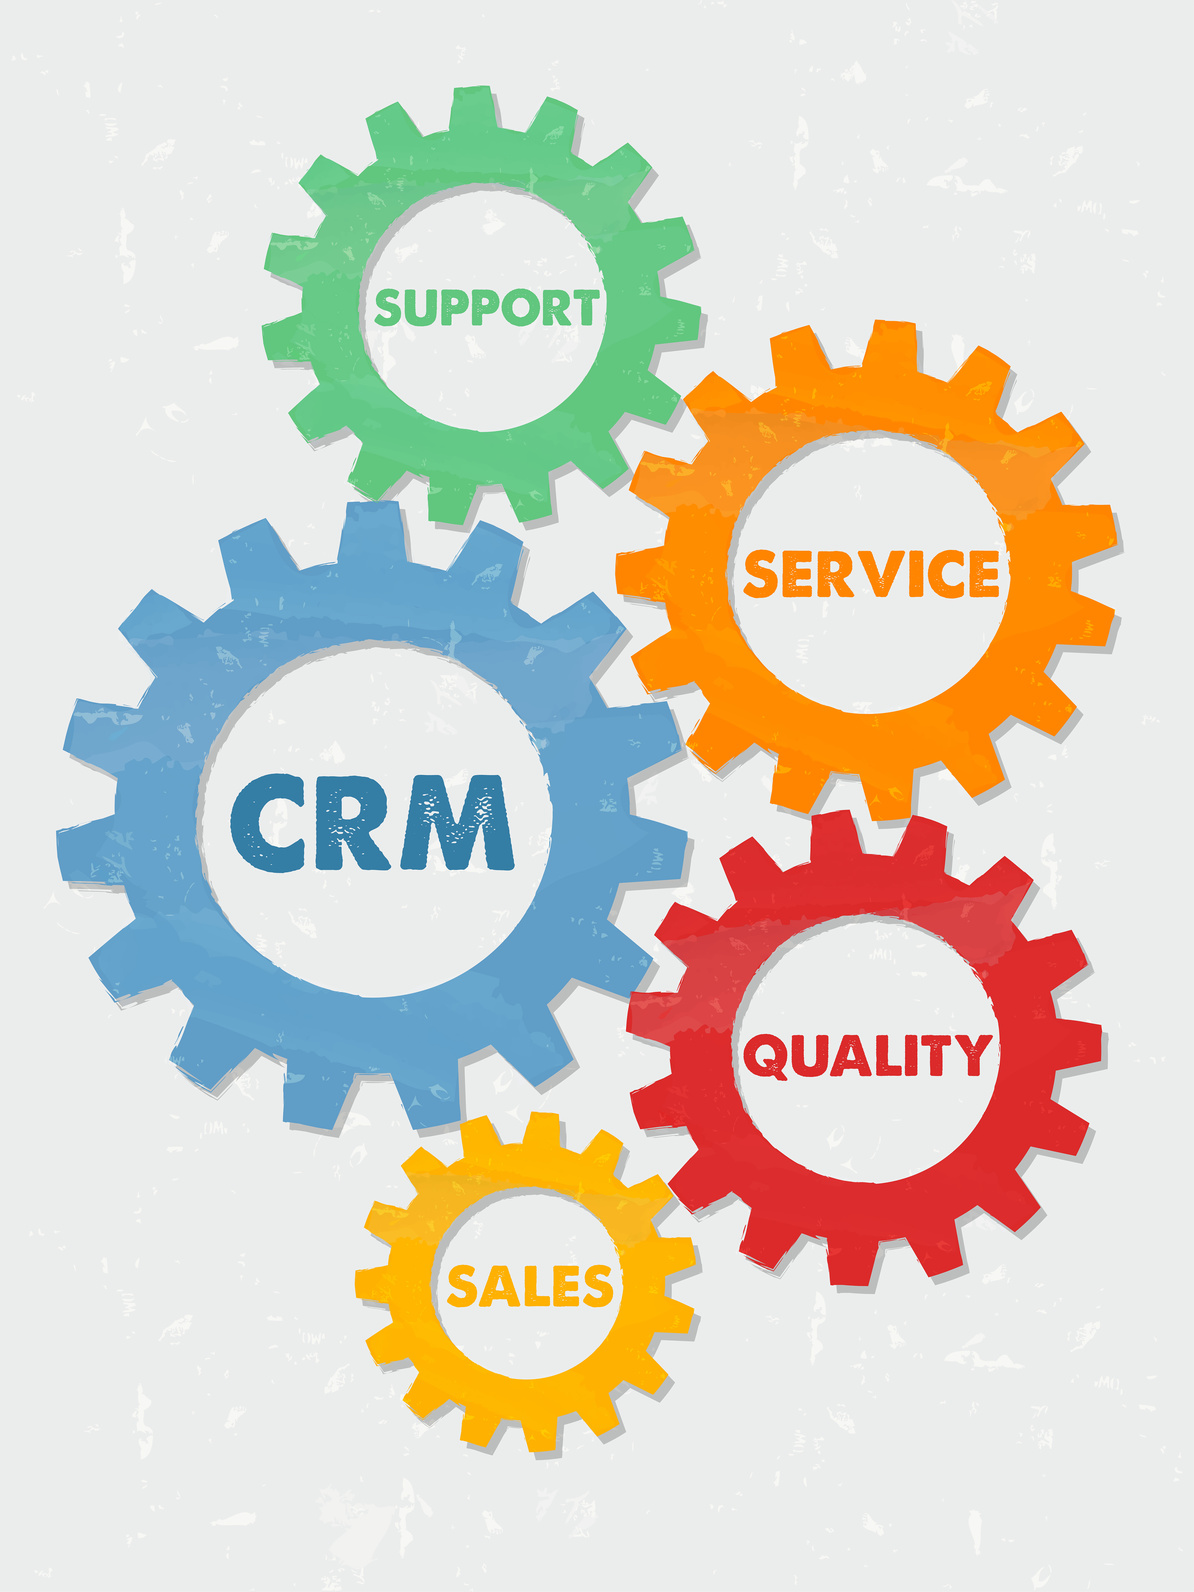 introduction to customer relationship management Customer relationship management (crm) in a very broad way can be defined as the efforts made towards creating, developing, and maintaining a healthy and long-lasting relationship with the customers using technology this tutorial is an introductory guide to crm that touches upon various topics such as understanding 21st century customers.